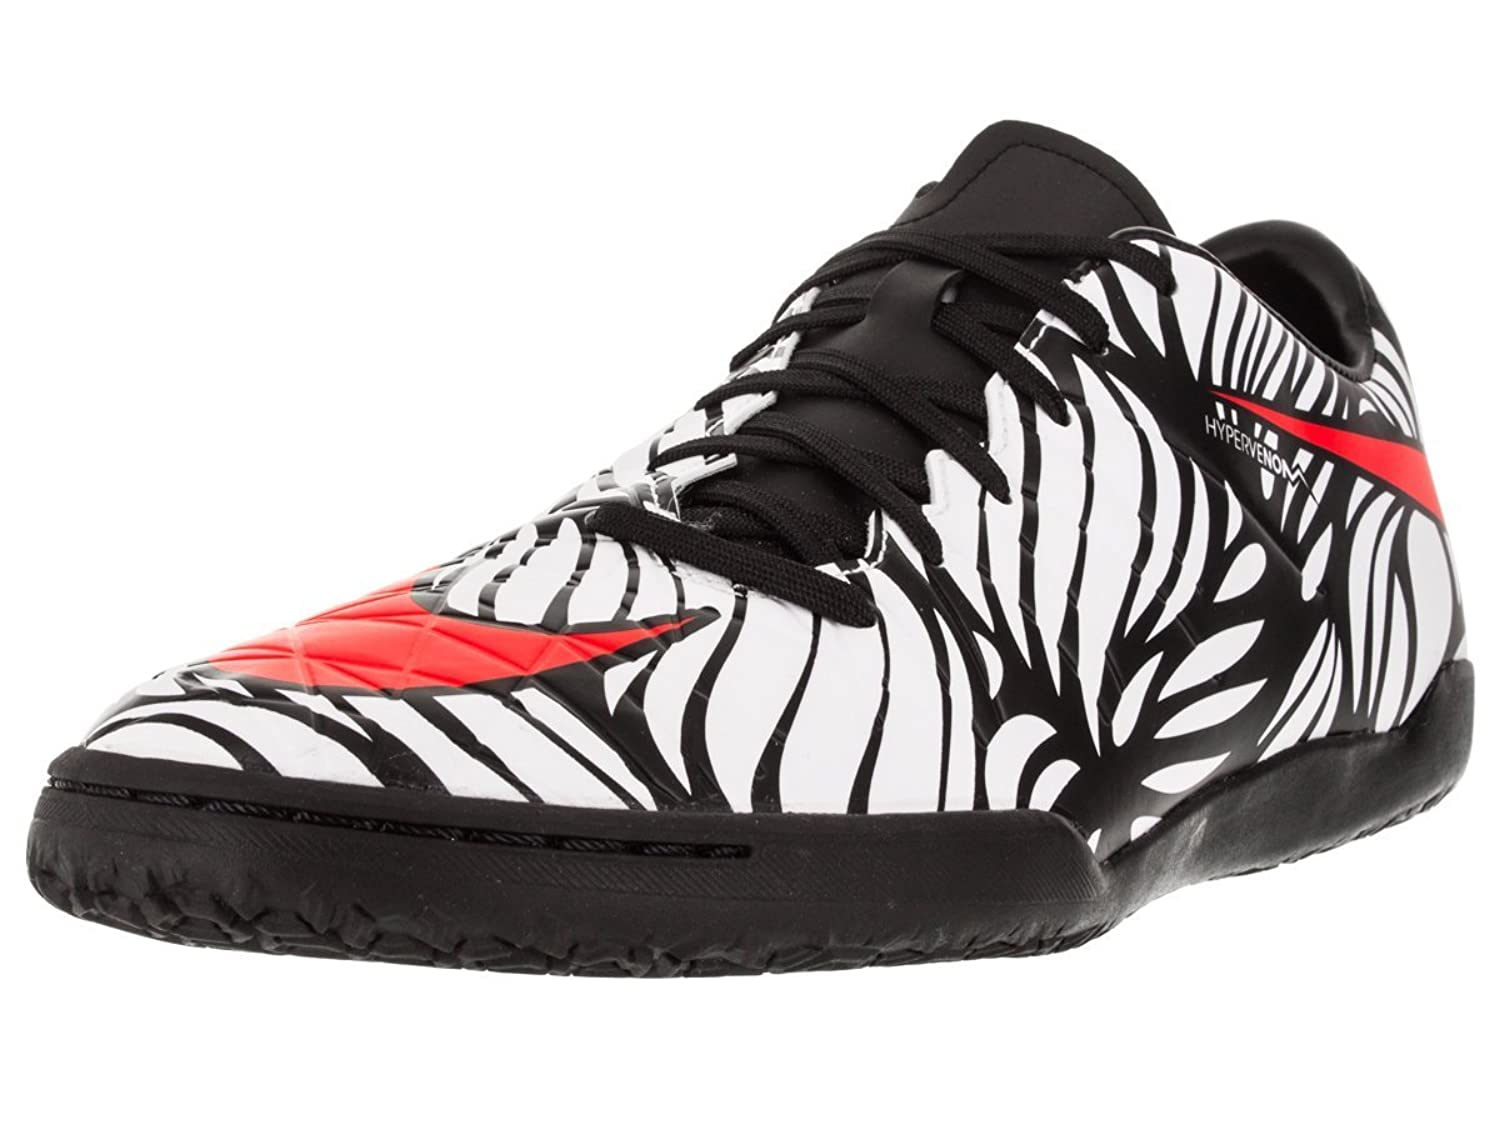 Factory Outlet Nike Hypervenom Phelon Njr Ii Tf - Black / White / Red Shop No.53131308